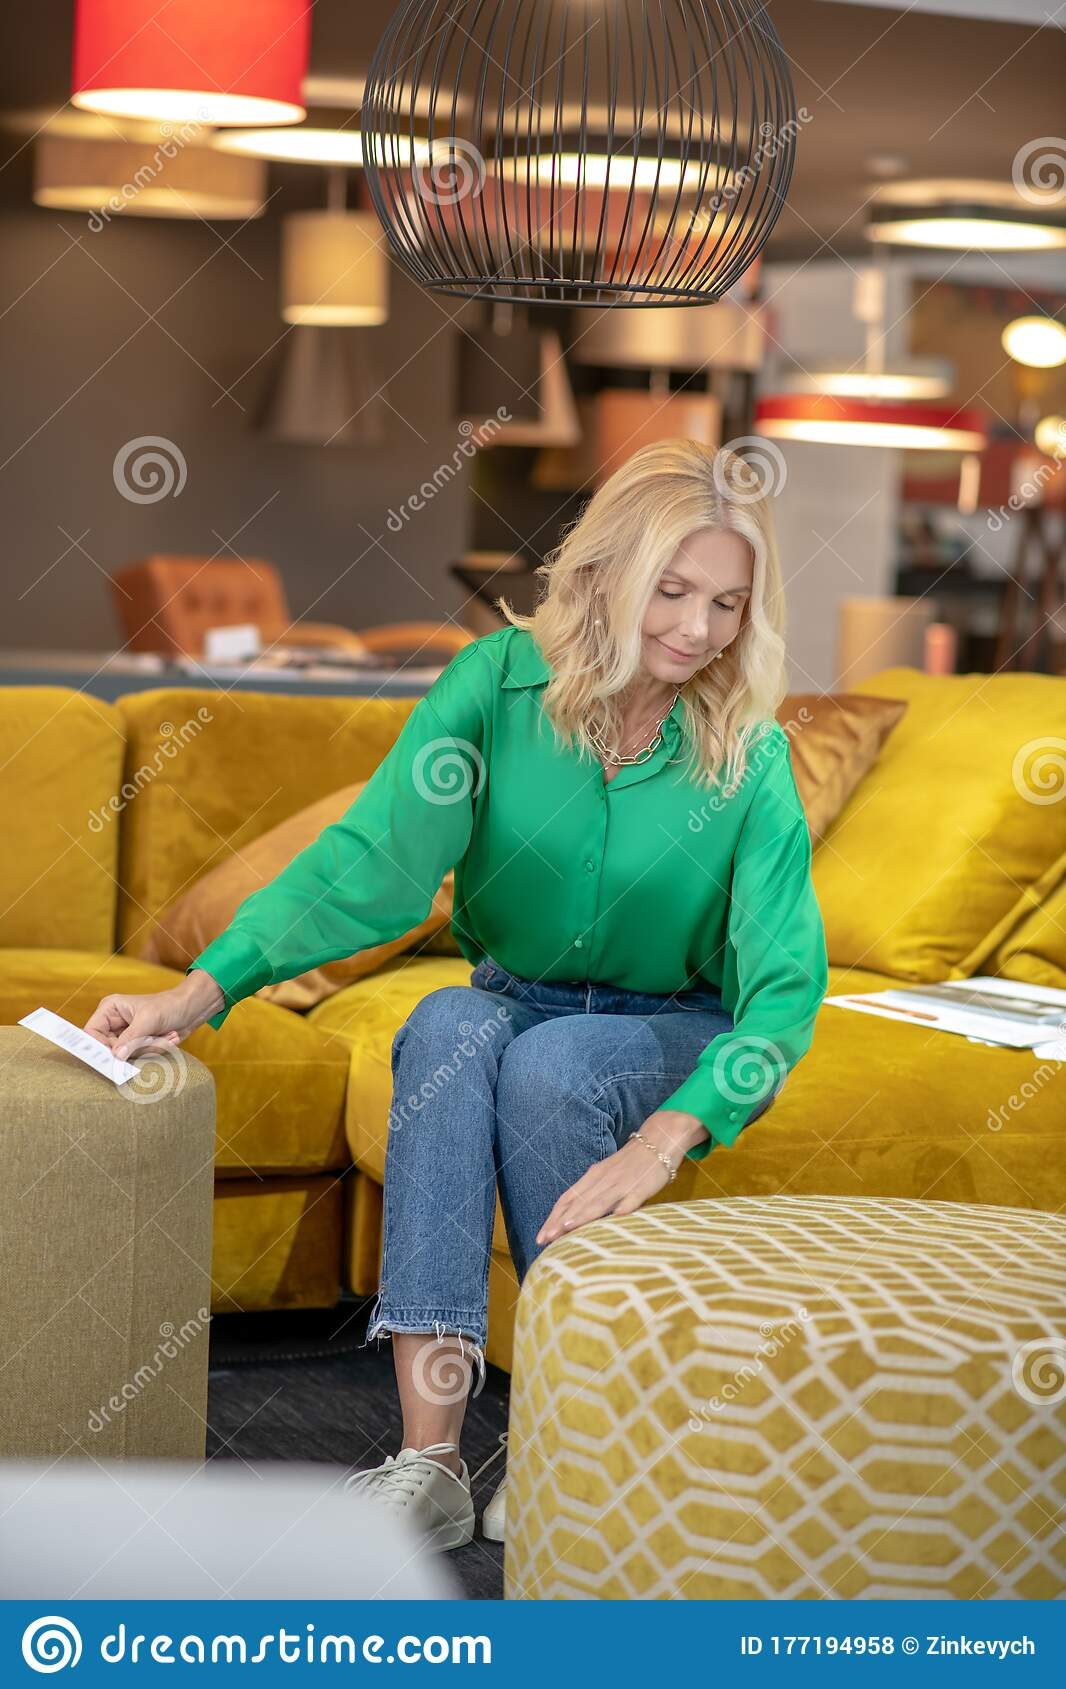 Picture of: Blonde Woman In A Green Blouse And Jeans Sitting On A Yellow Sofa Stock Photo Image Of Blonde Involved 177194958